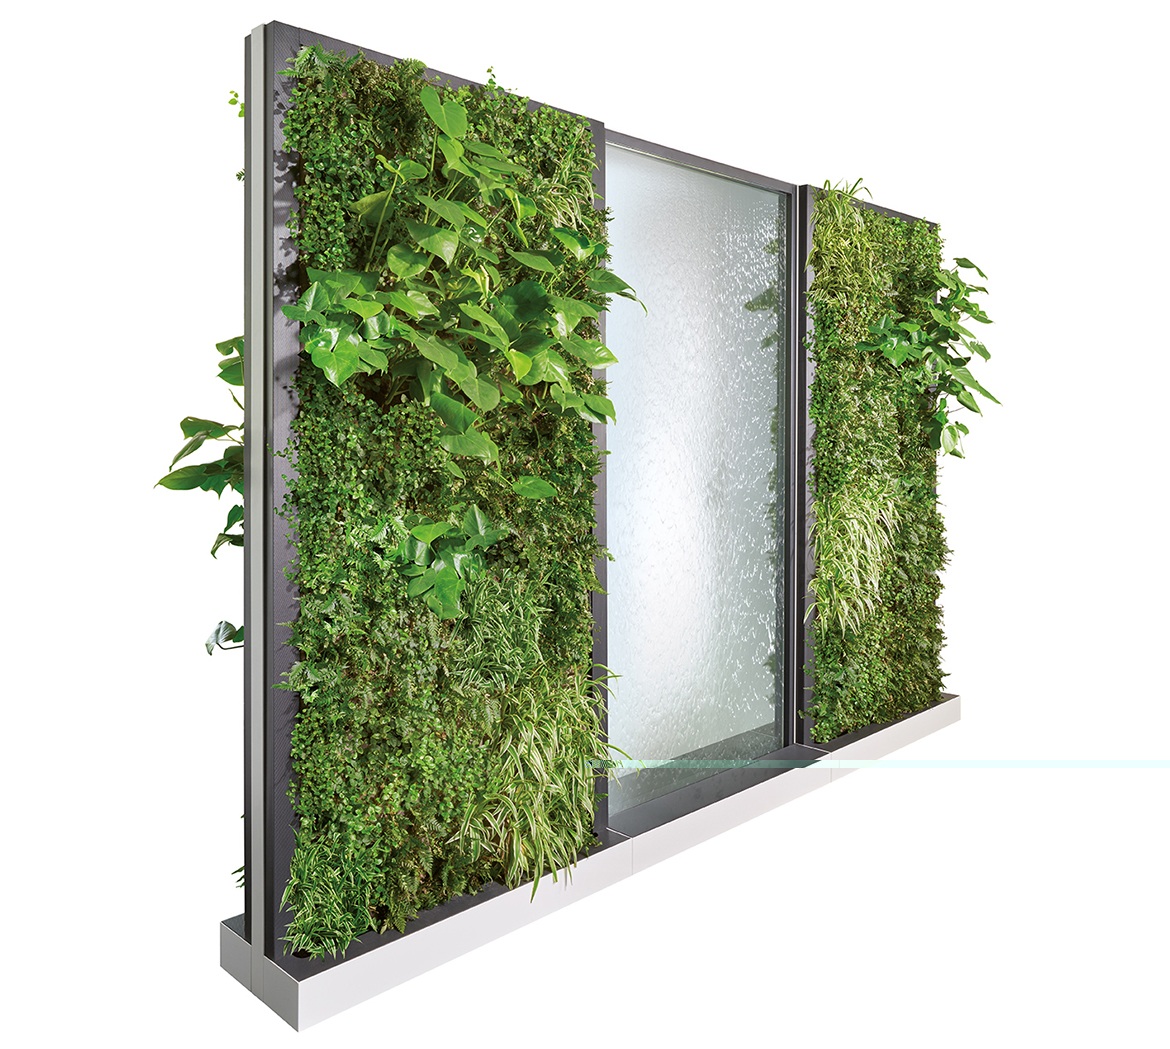 Mur acoustique naturel GREENWALL